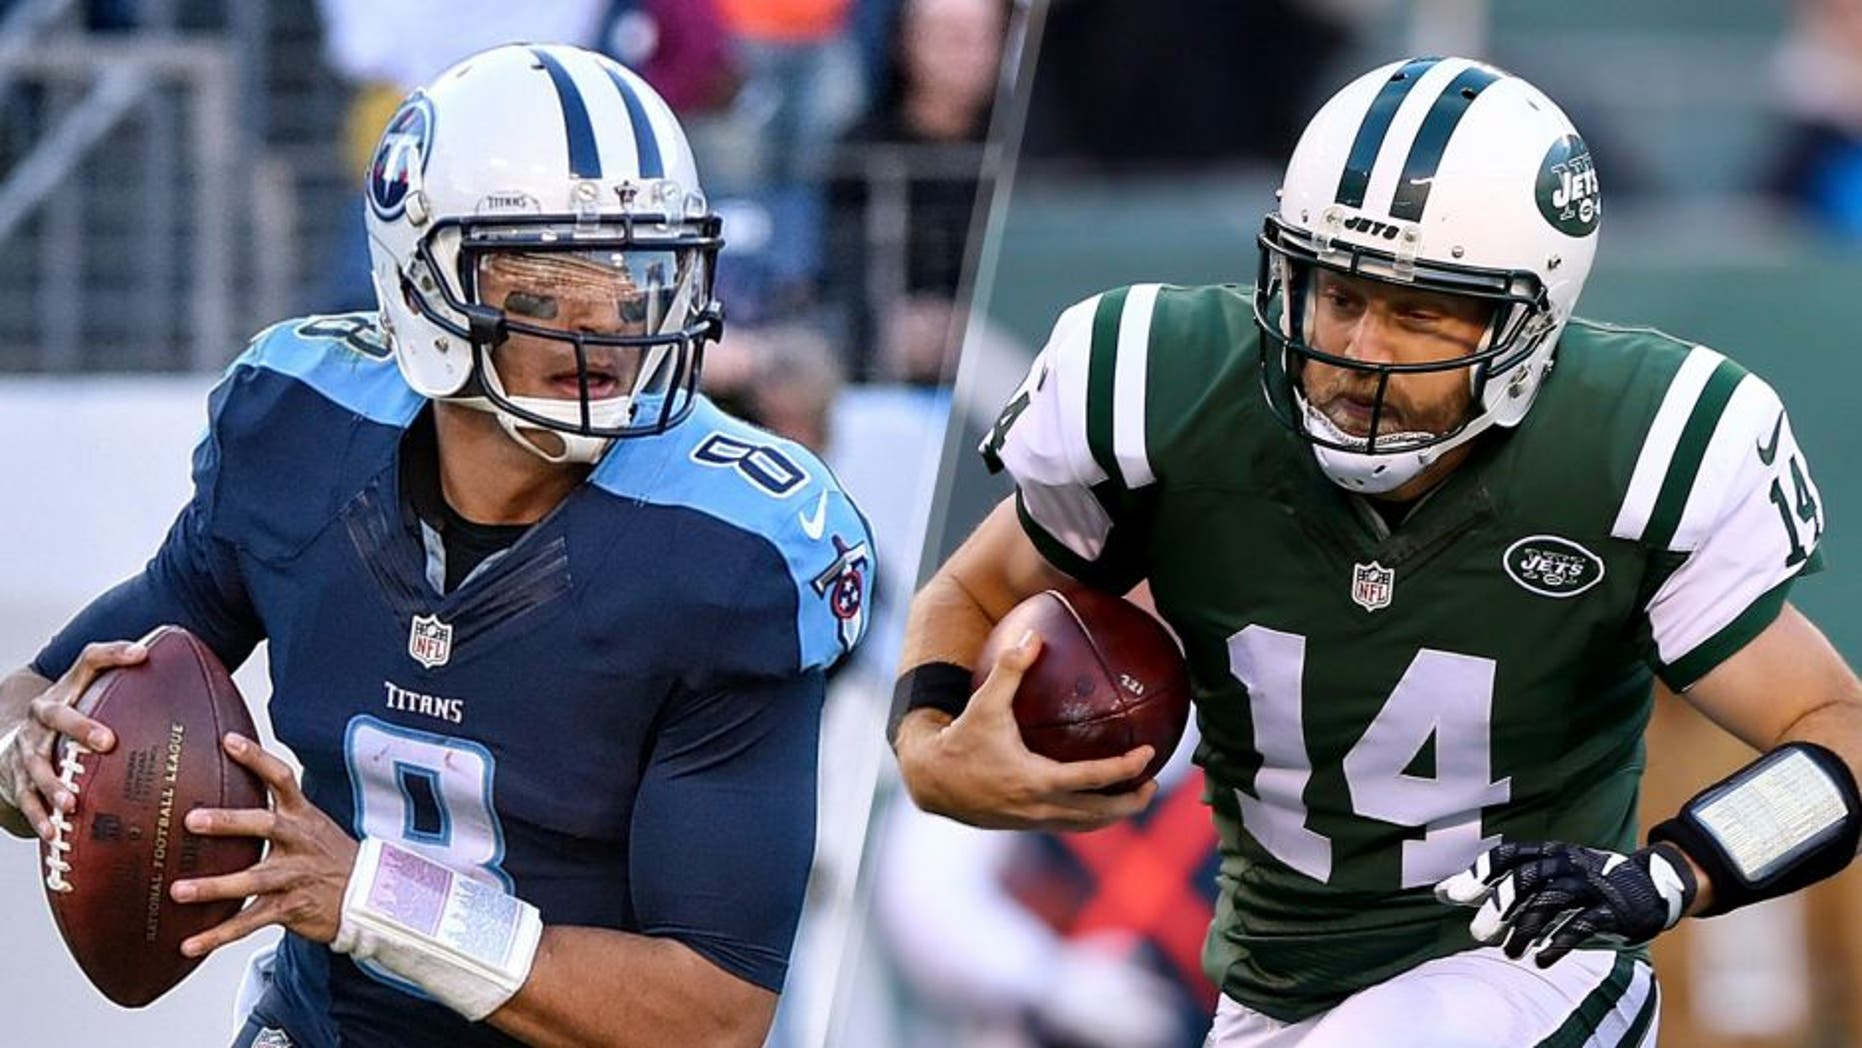 Quarterback Marcus Mariota #8 of the Tennessee Titans plays against the Jacksonville Jaguars at Nissan Stadium on December 6, 2015 in Nashville, Tennessee. (Photo by Frederick Breedon/Getty Images) Ryan Fitzpatrick #14 of the New York Jets scrambles in the third quarter against the Miami Dolphins on November 29, 2015 at MetLife Stadium in East Rutherford, New Jersey. (Photo by Elsa/Getty Images)